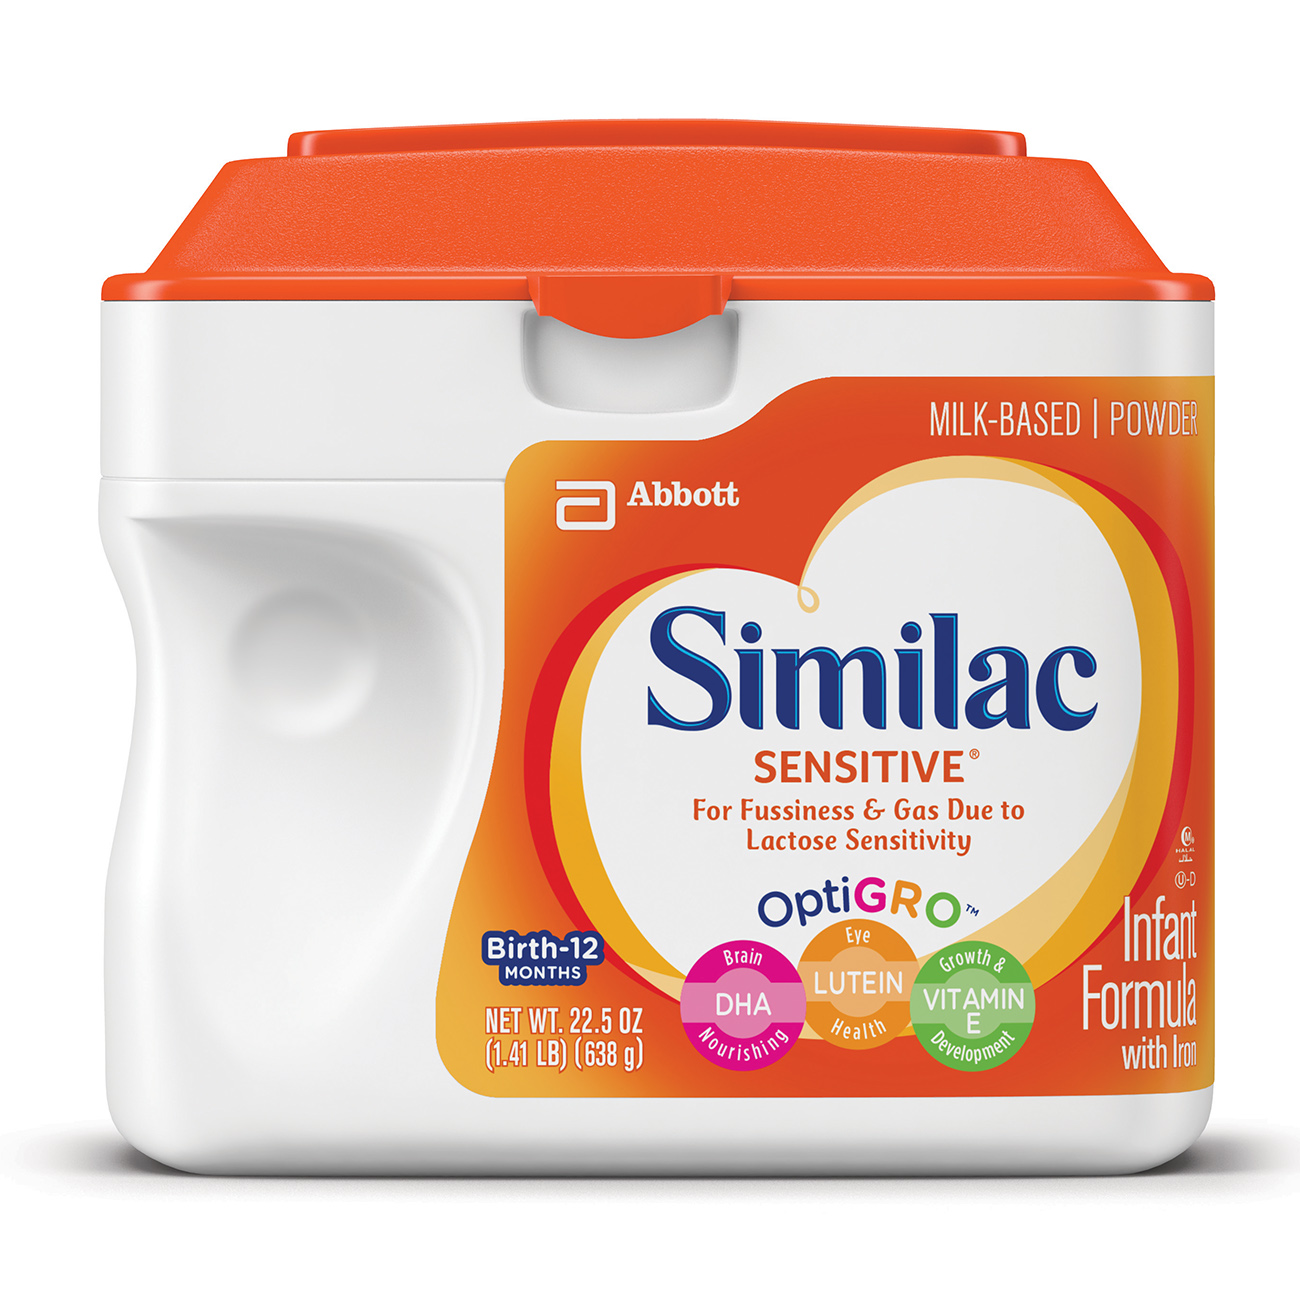 Similac Sensitive Infant Formula w/ Iron (6 Pack) Powder, 1.41 lb